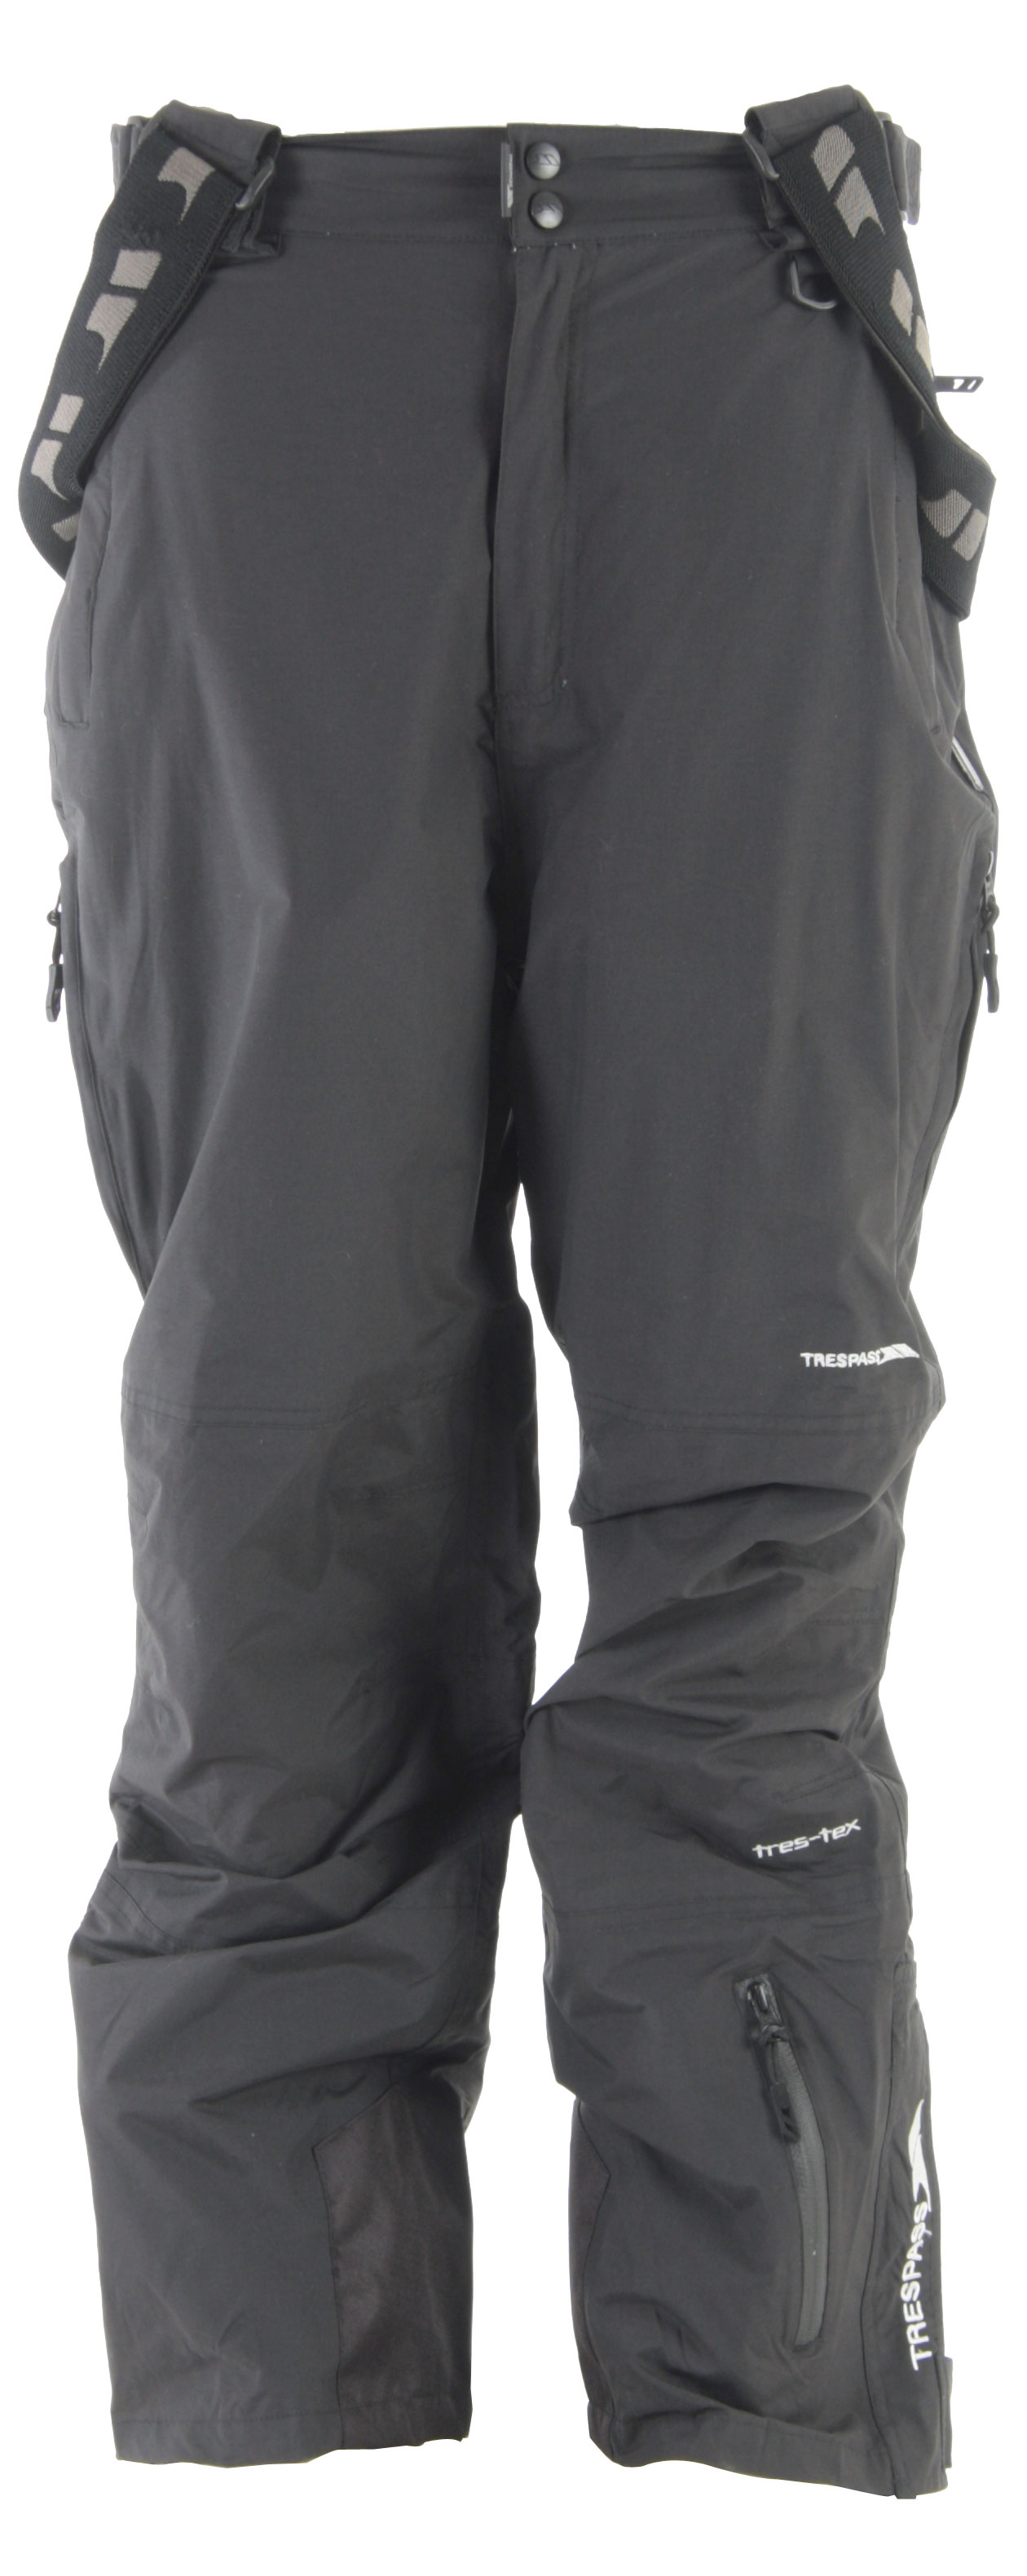 Snowboard Trespass' Fagan snowboard pants hold up to all kinds of weather with their wind proof construction and 3,000 mm waterproofing. The taped seams add even more protection and ensure lasting durability. Four pockets, 1 water resistant, provide plenty of storage to bring your gear along for the ride. Side leg ventilation zips add airflow when the sun comes out. Get all weather performance and subtle style with the Trespass Fagan snowboard pants and ride in comfort all day.Key Features of The Trespass Fagan Snowboard Pants: 3,000mm Waterproof 3,000g Breathability Windproof, Taped Seams Unpadded Tricot Lining 1 Water Repellent Zip Pockets 3 Welt Pockets Side Waist Adjusters Side Leg Ventilation Zips Side Leg Ankle Zip with Facing Shell: 100% Polymide PU Coating 100% Polyester Lining - $48.95